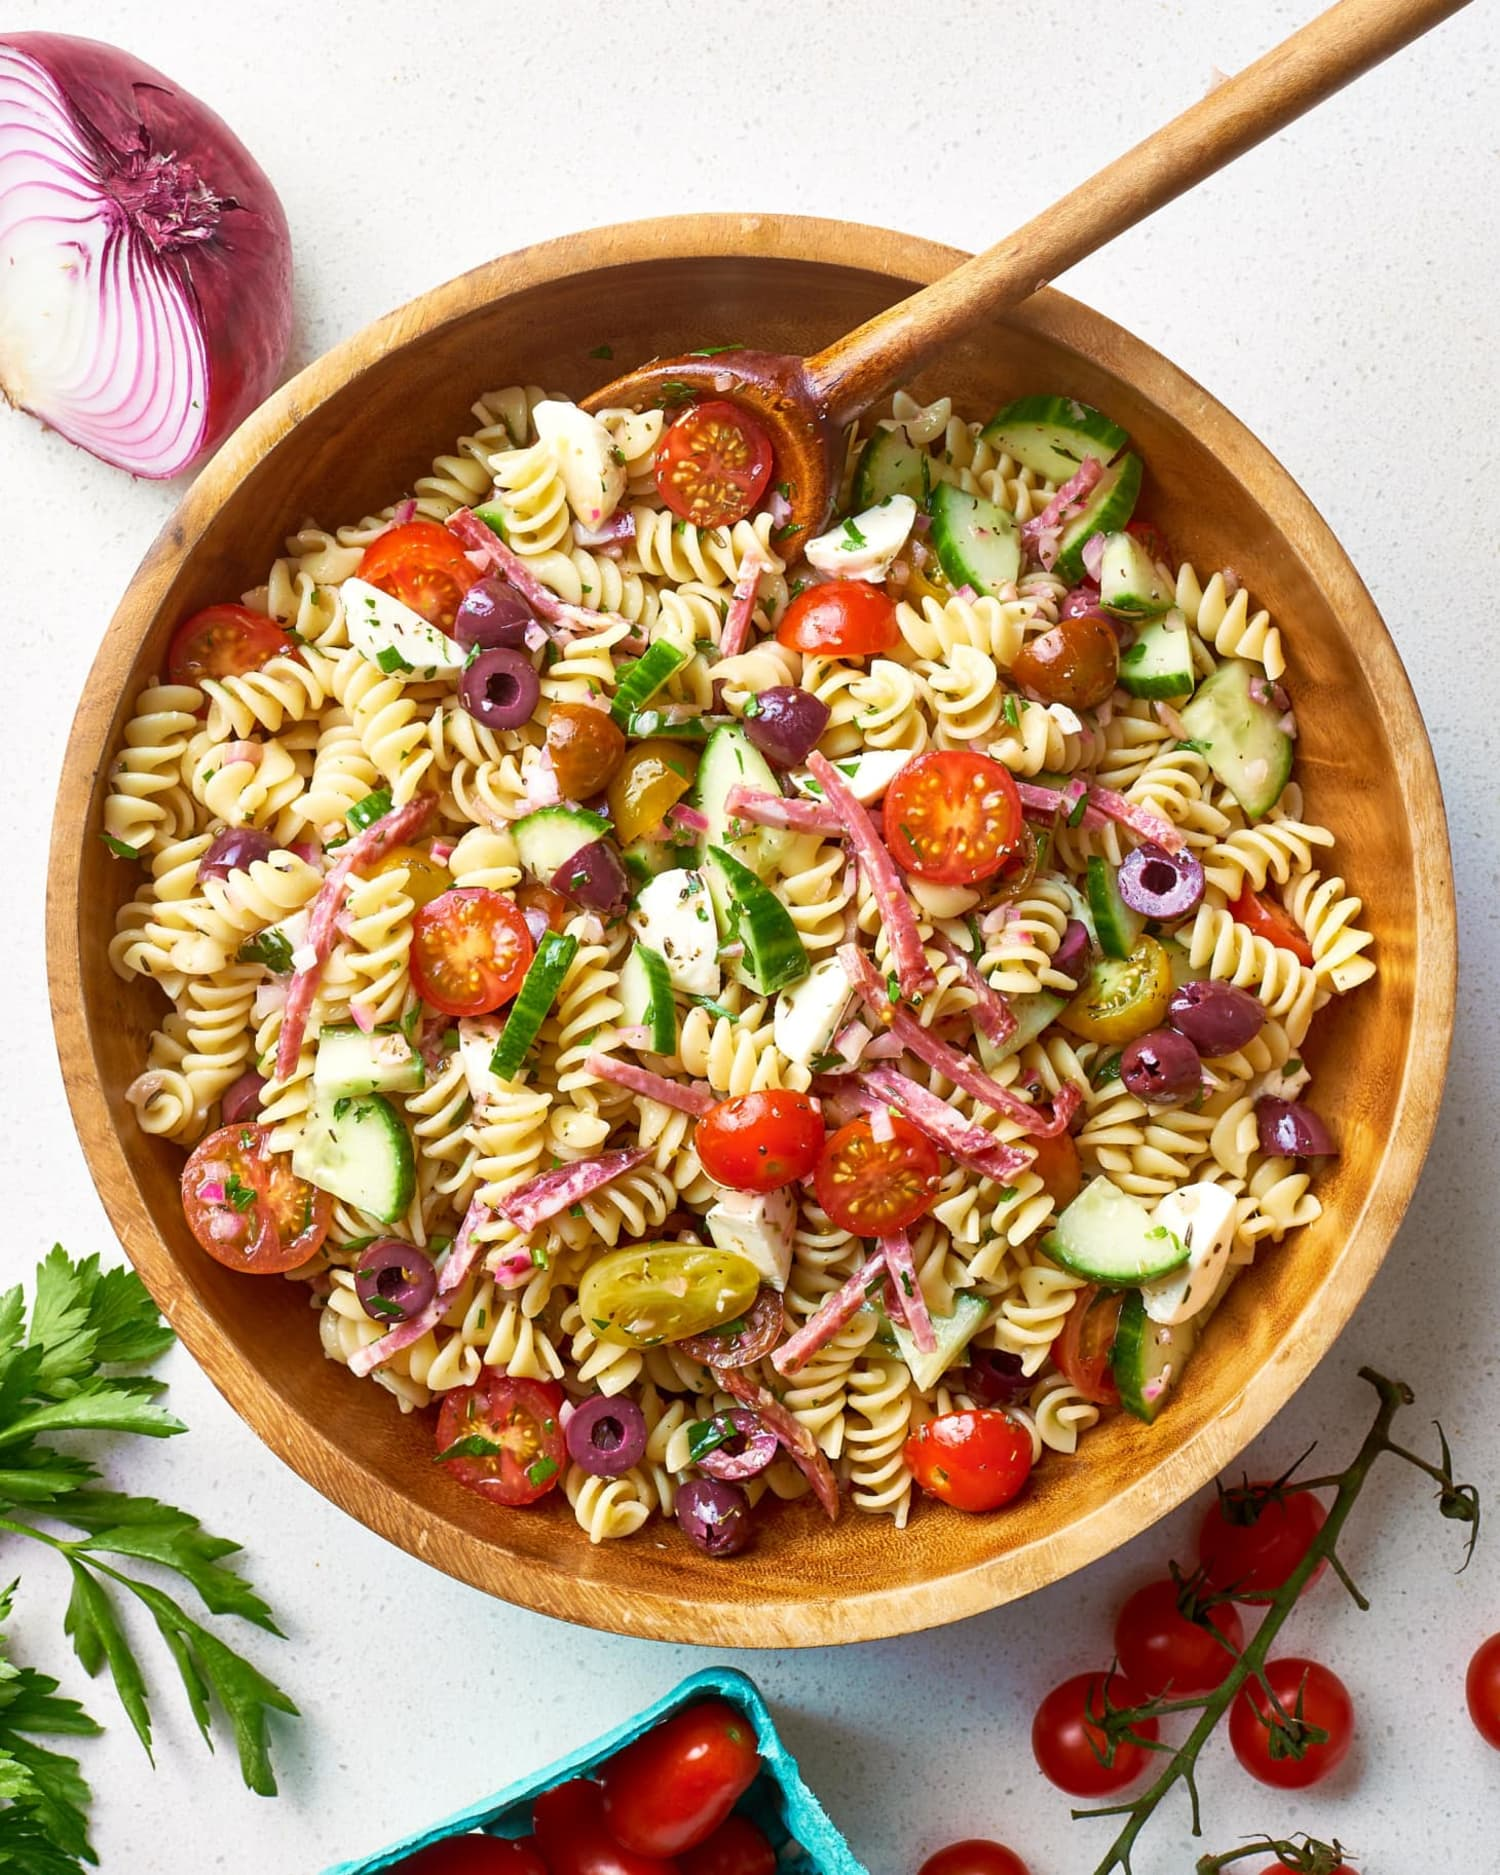 This Small but Brilliant Tip Makes Pasta Salad So Much Better